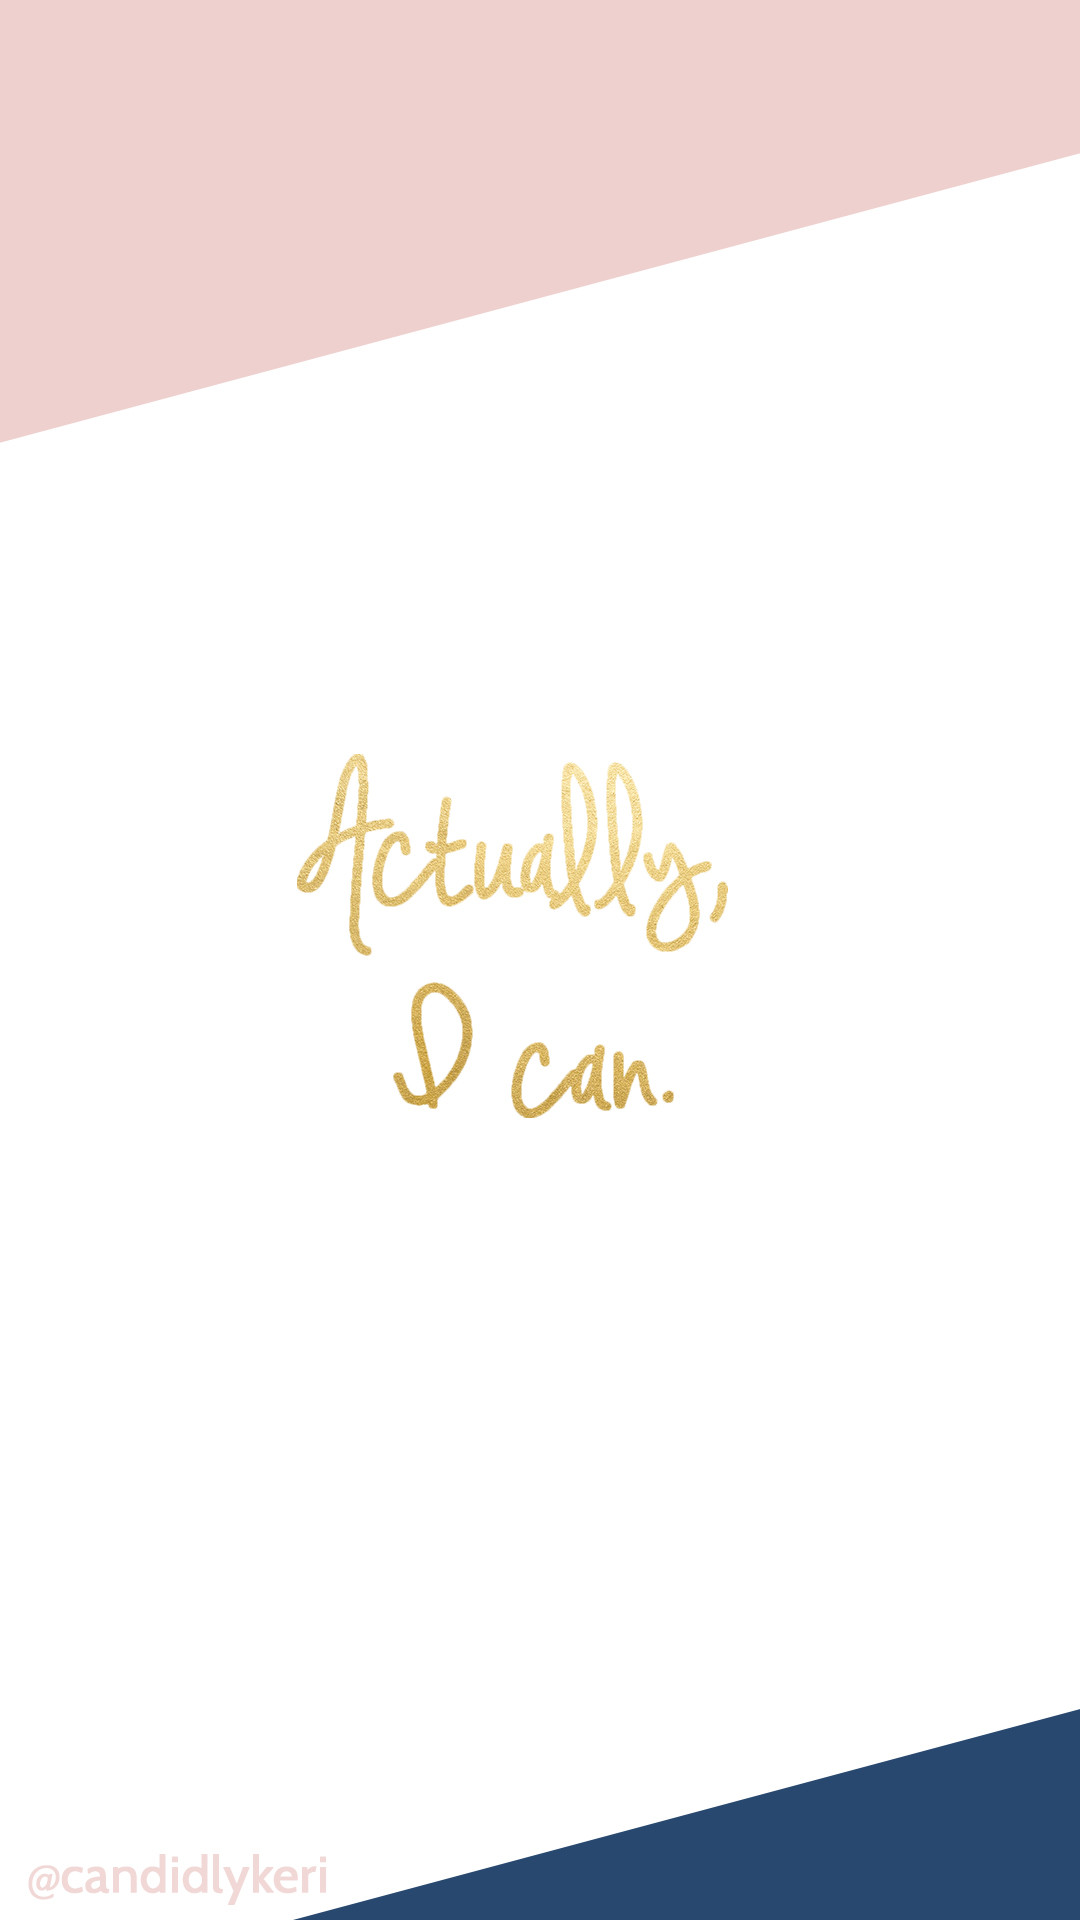 Actually I can, blush pink navy gold foil background wallpaper you can  download for free